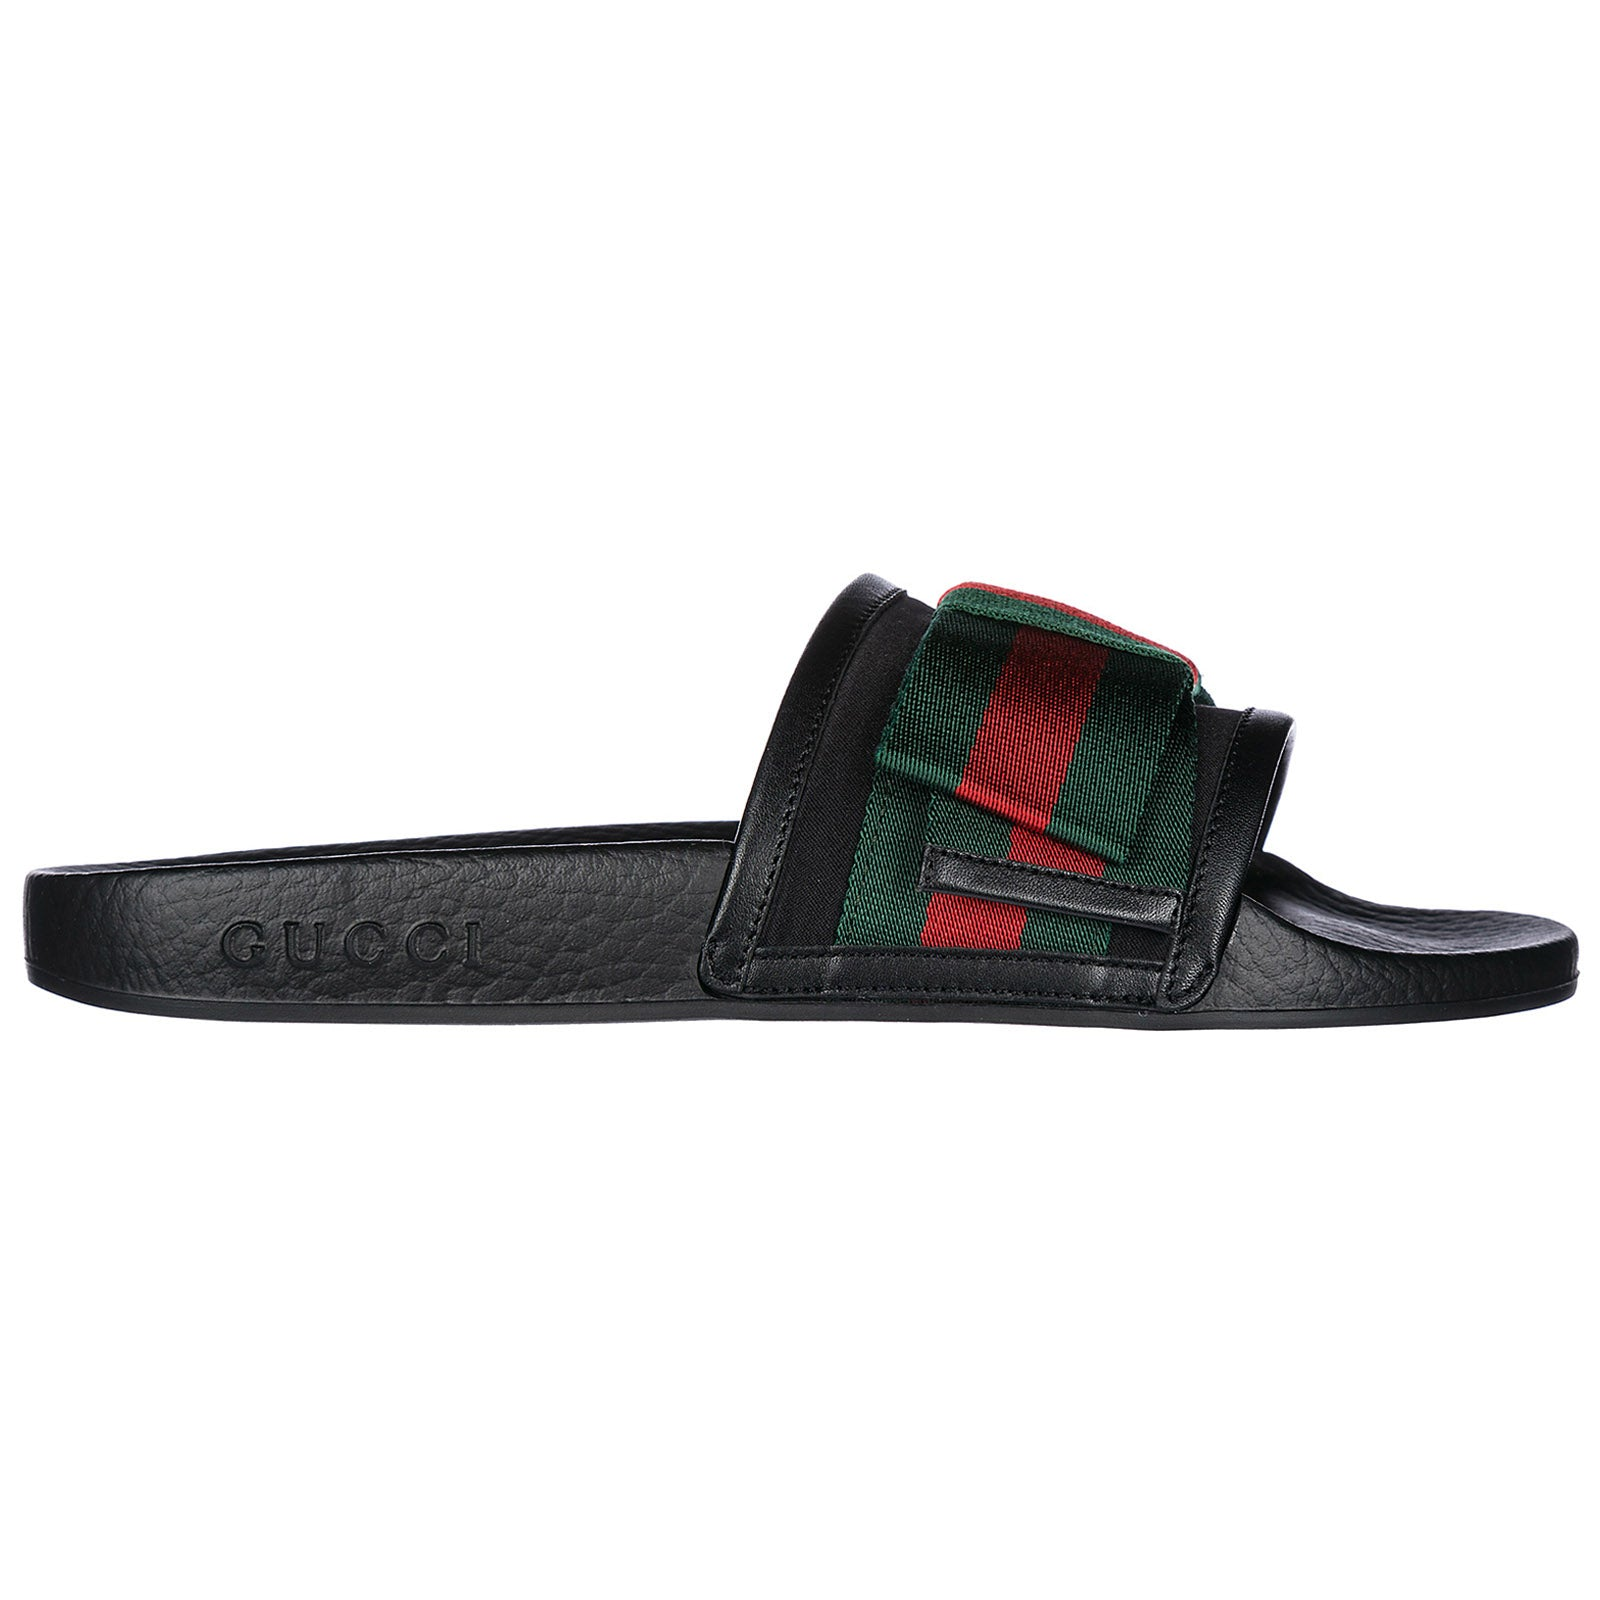 1cc02721cac Gucci Women s Pursuit Satin Bow Pool Slide Sandals In Black